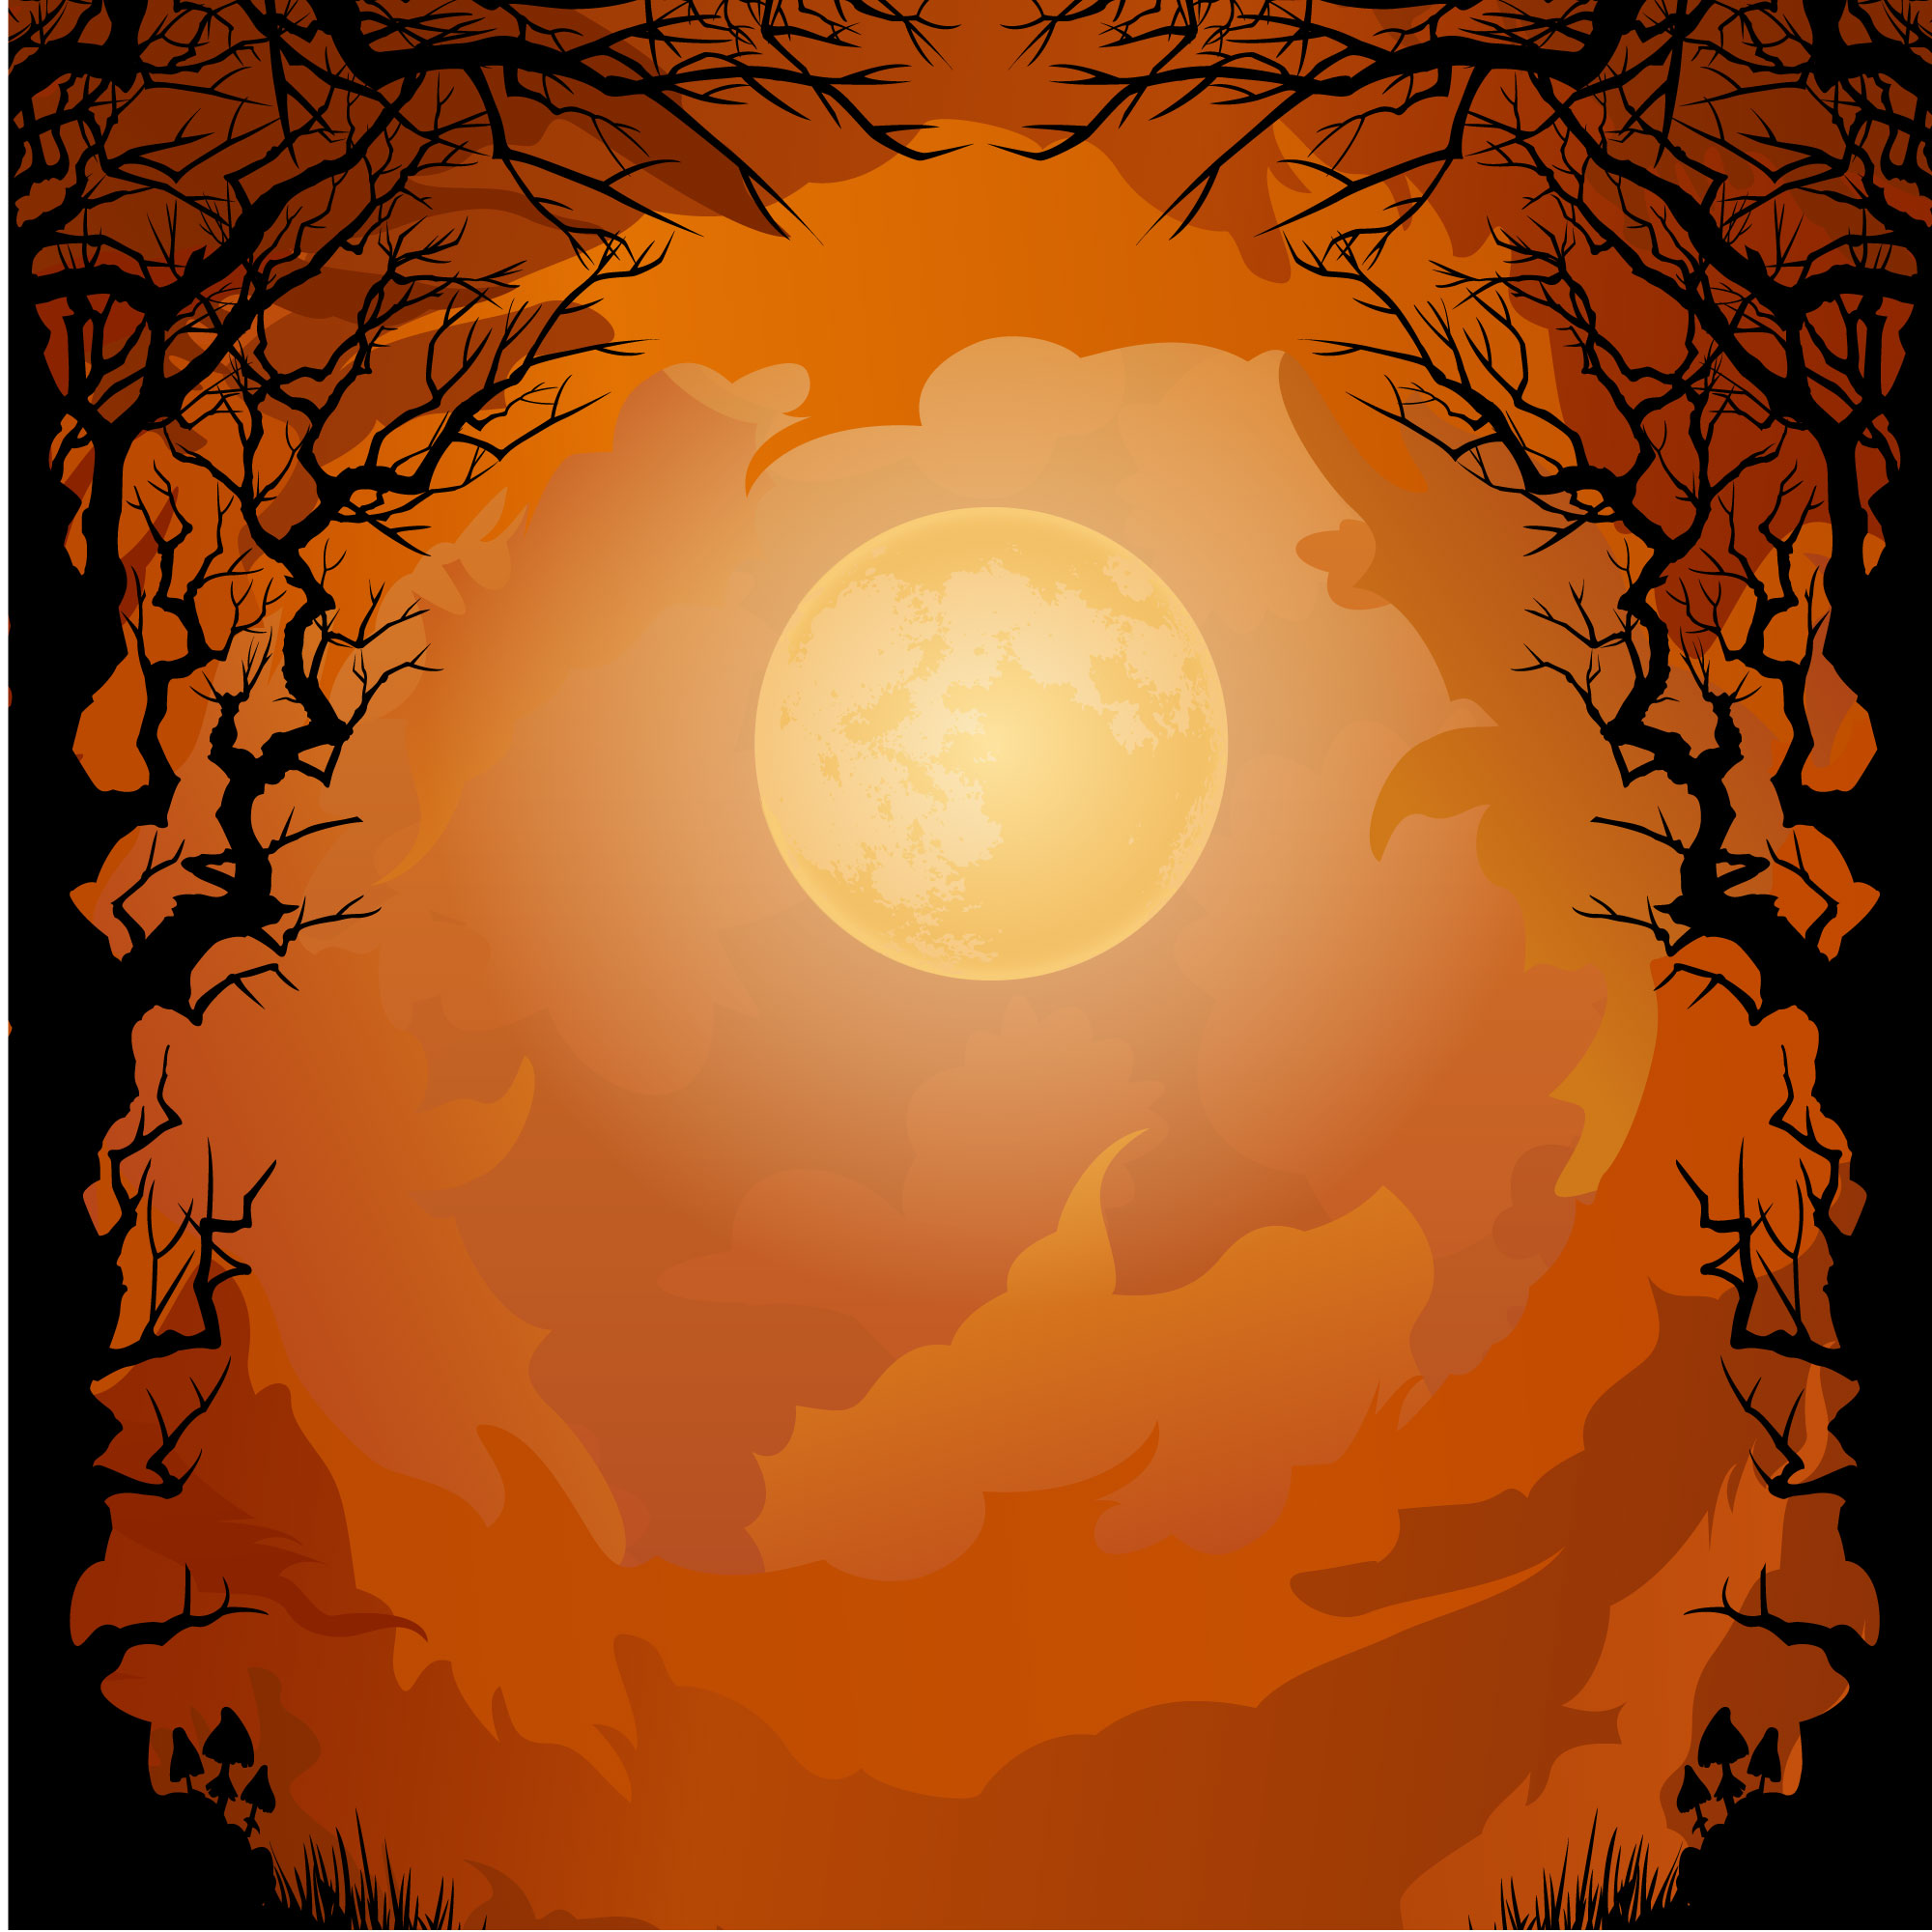 Dark forest with orange background